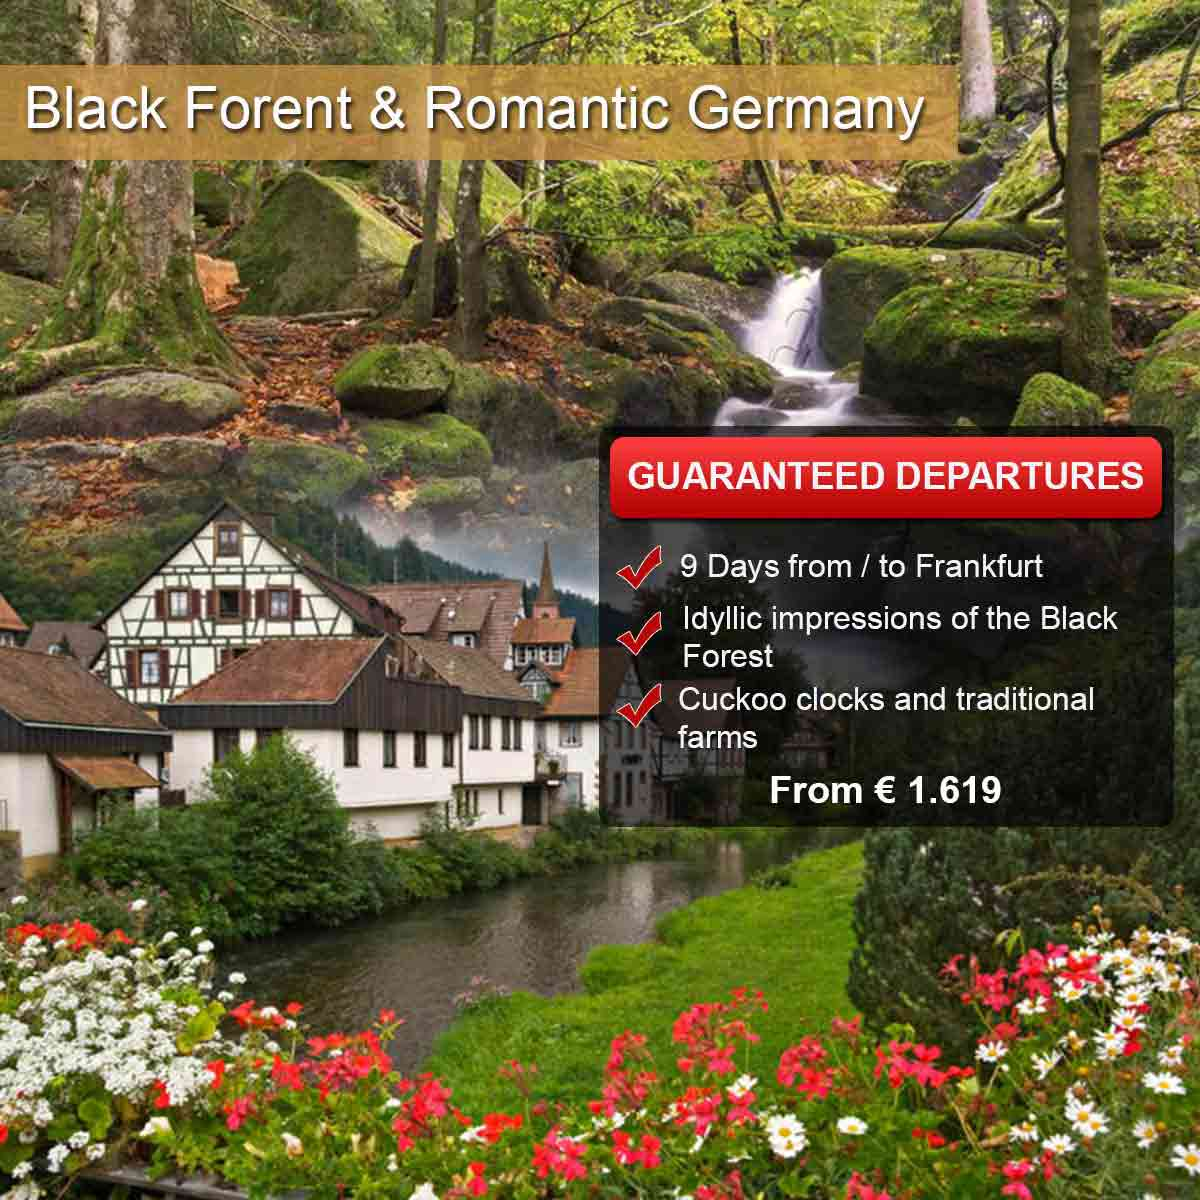 Black Forest & Romantic Germany